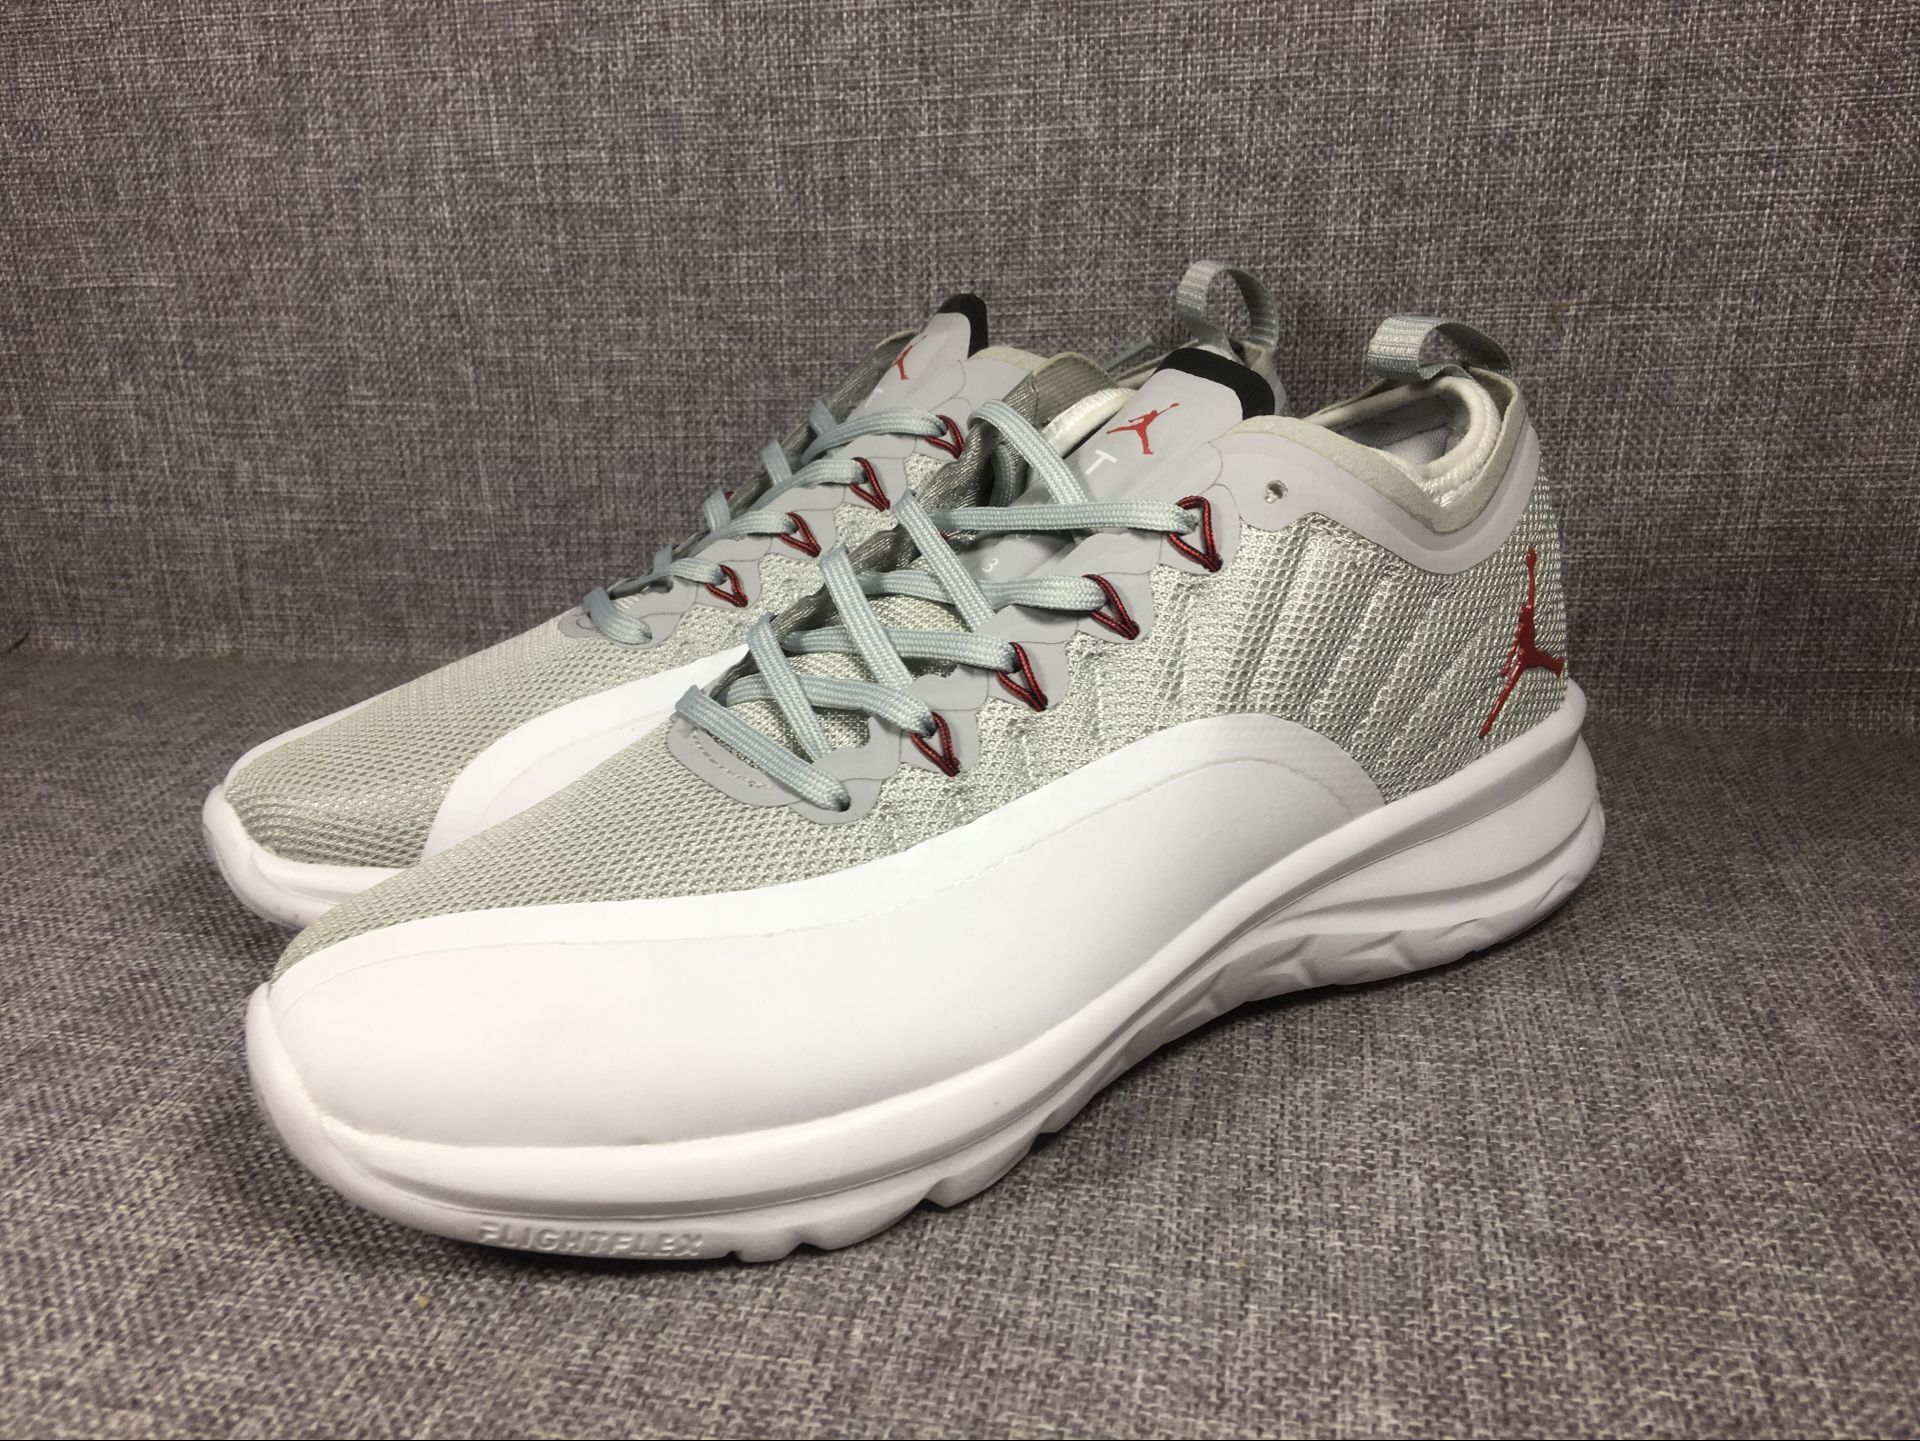 2018 New Air Jordan 12 Low Grey White Shoes